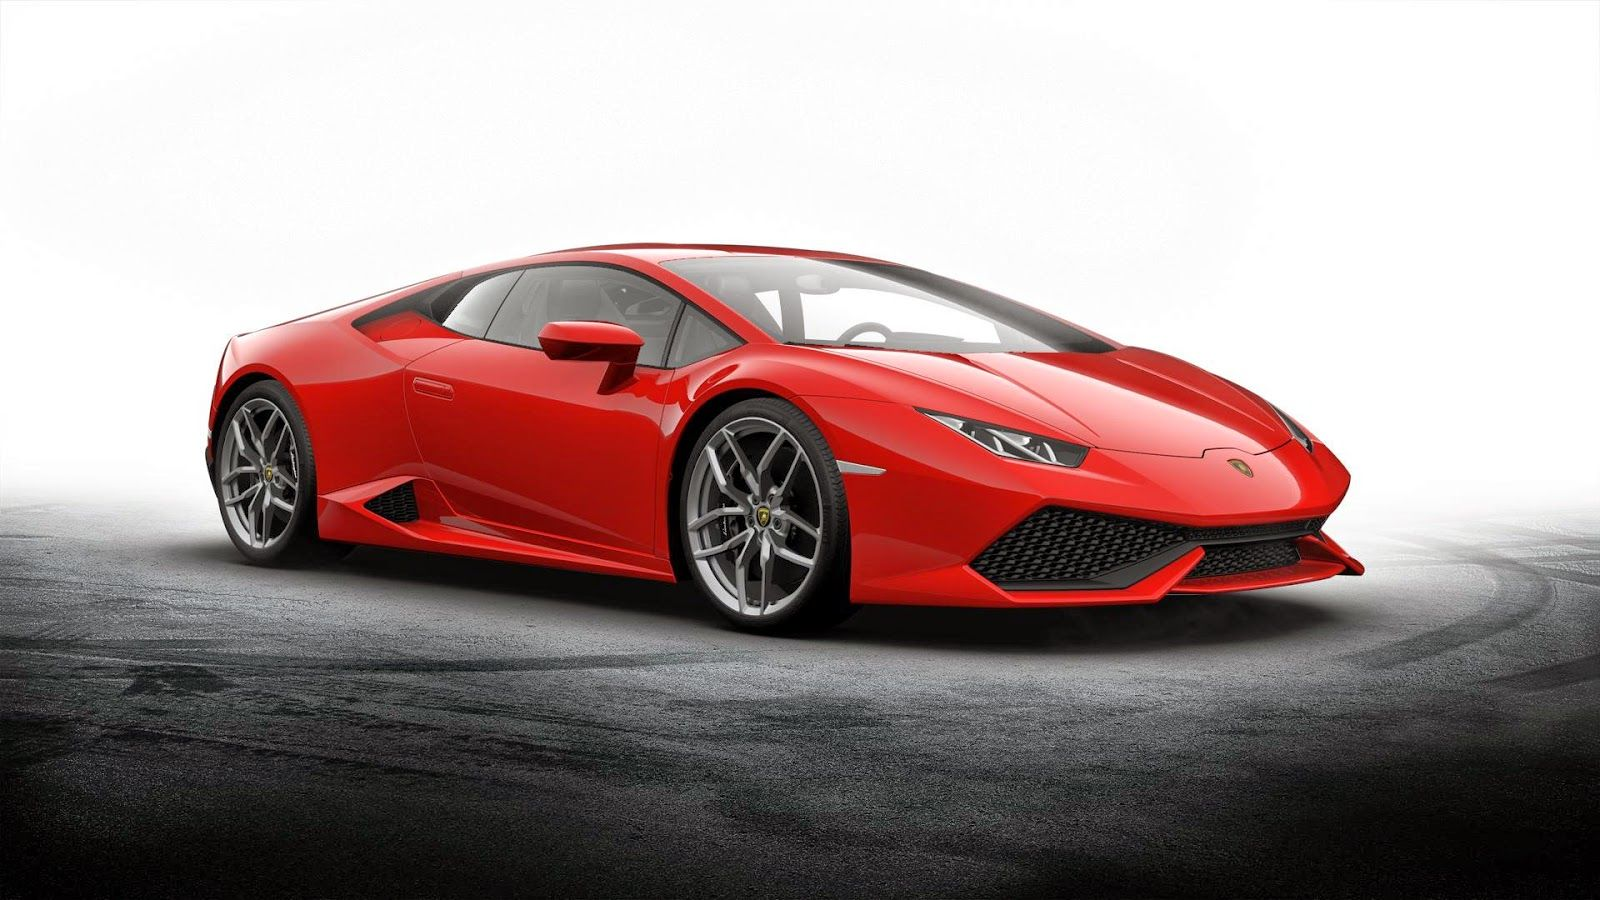 Lamborghini Huracan Wallpapers For Android Vehicles Wallpapers